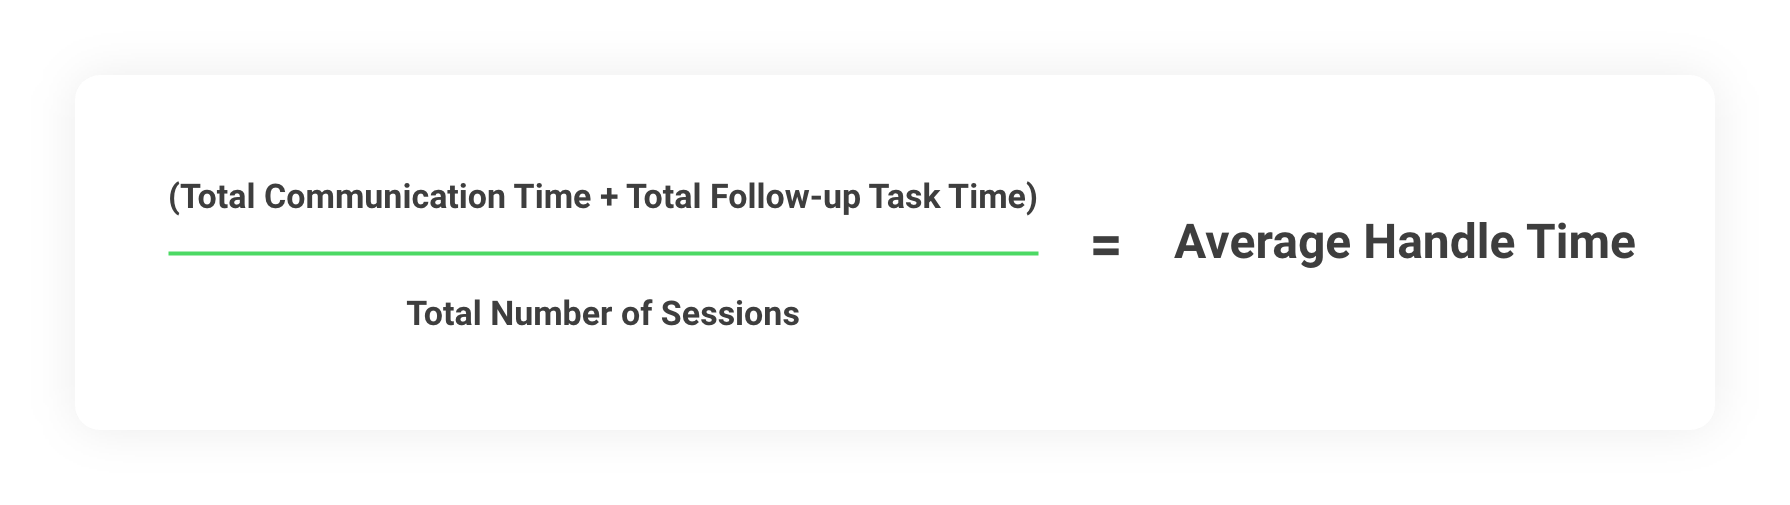 (Total Communication Time + Total Follow-up Task Time)/Total Number of Sessions = Average Handling Time (AHT)